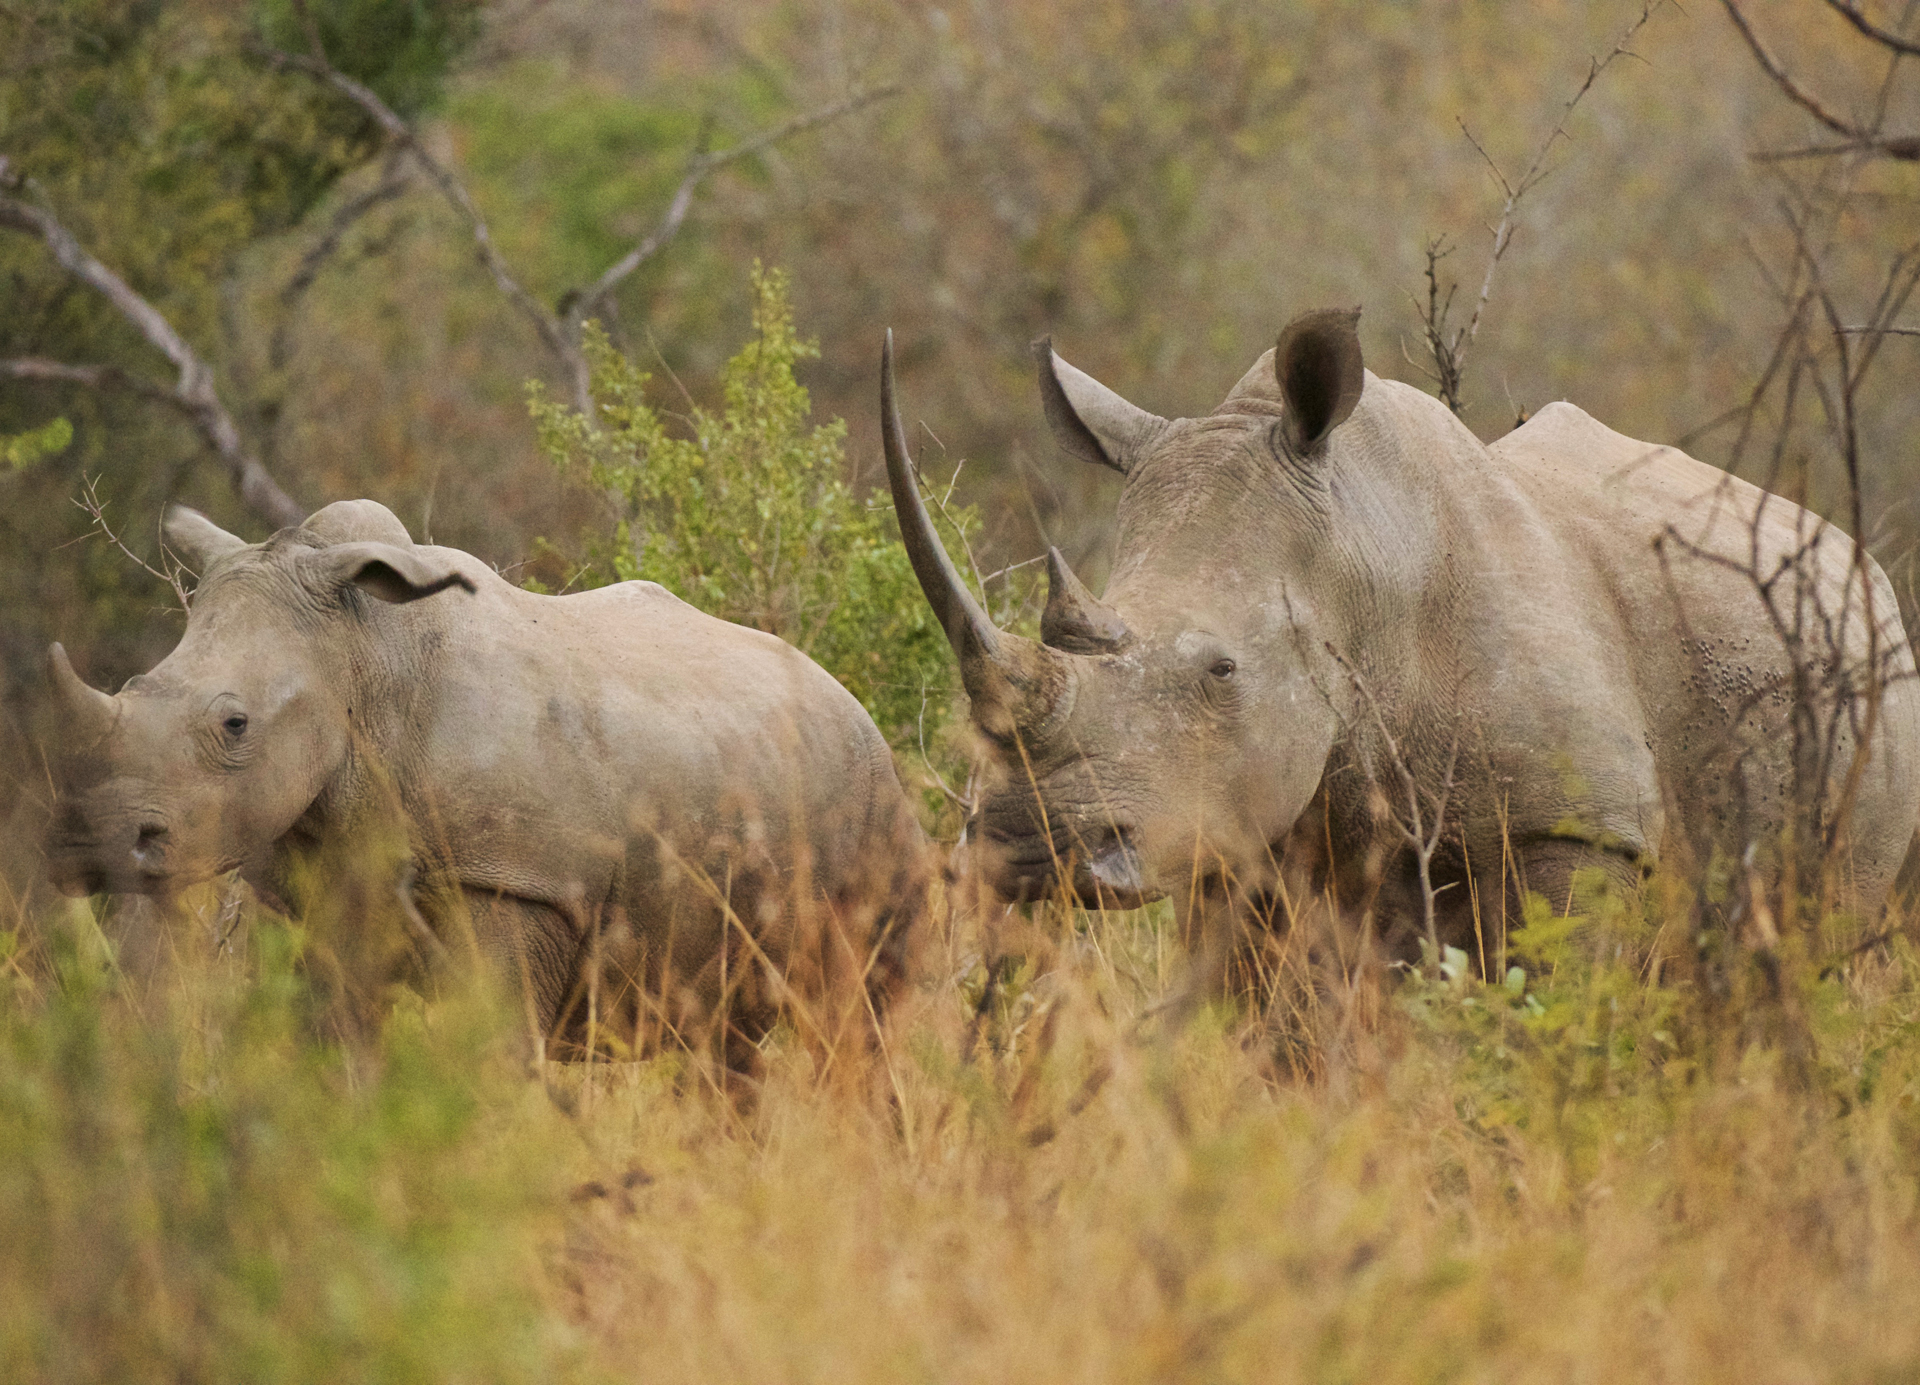 Rhino Protection Programme